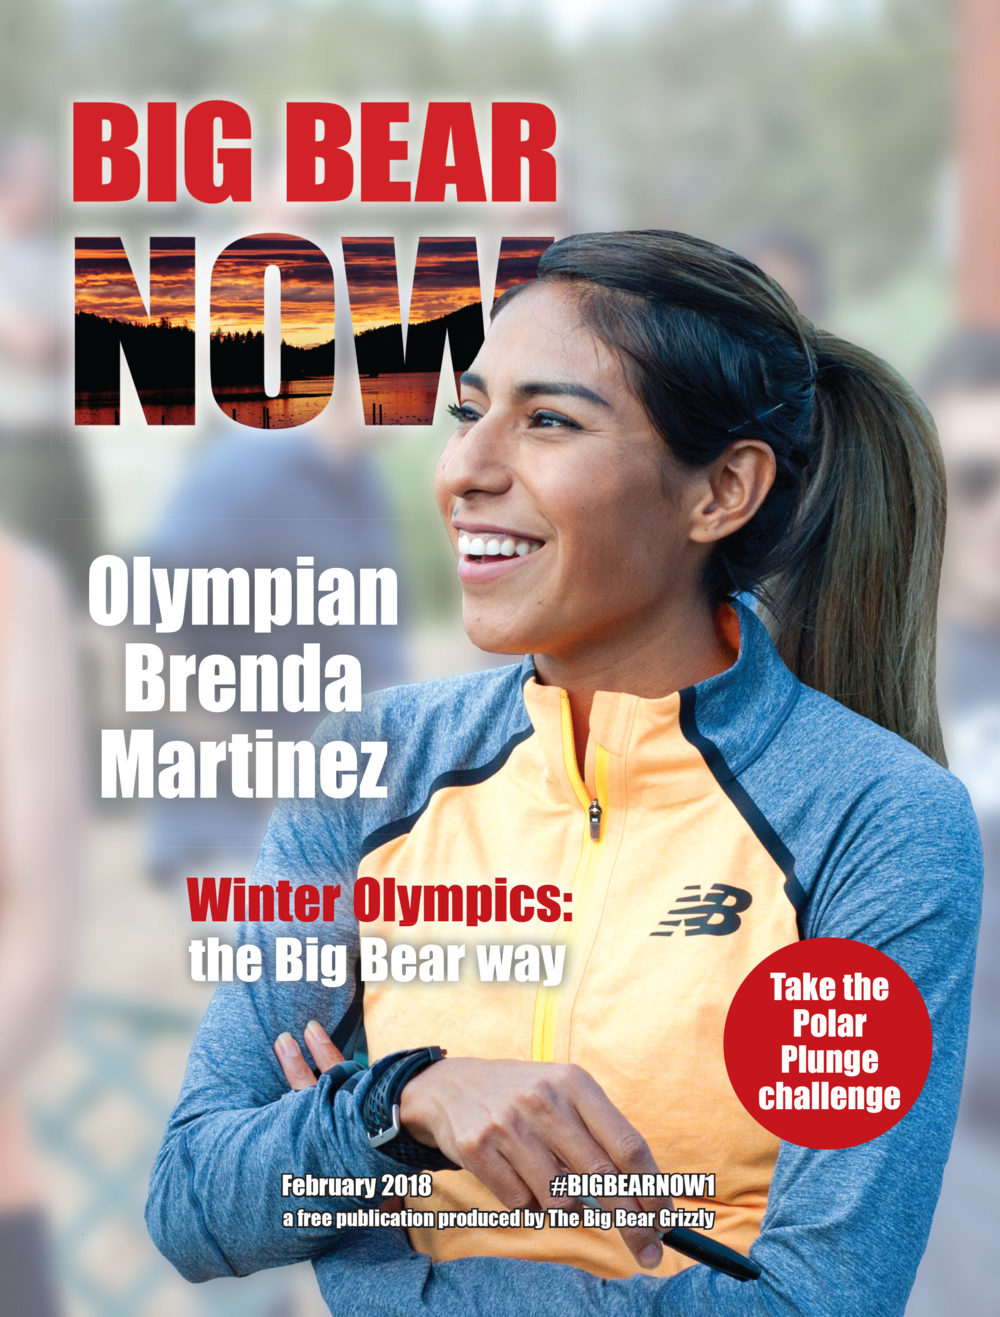 Natalie designed the February 2018 issue of Big Bear Now magazine and kept the layout simple yet consistent with the magazine's overall design.